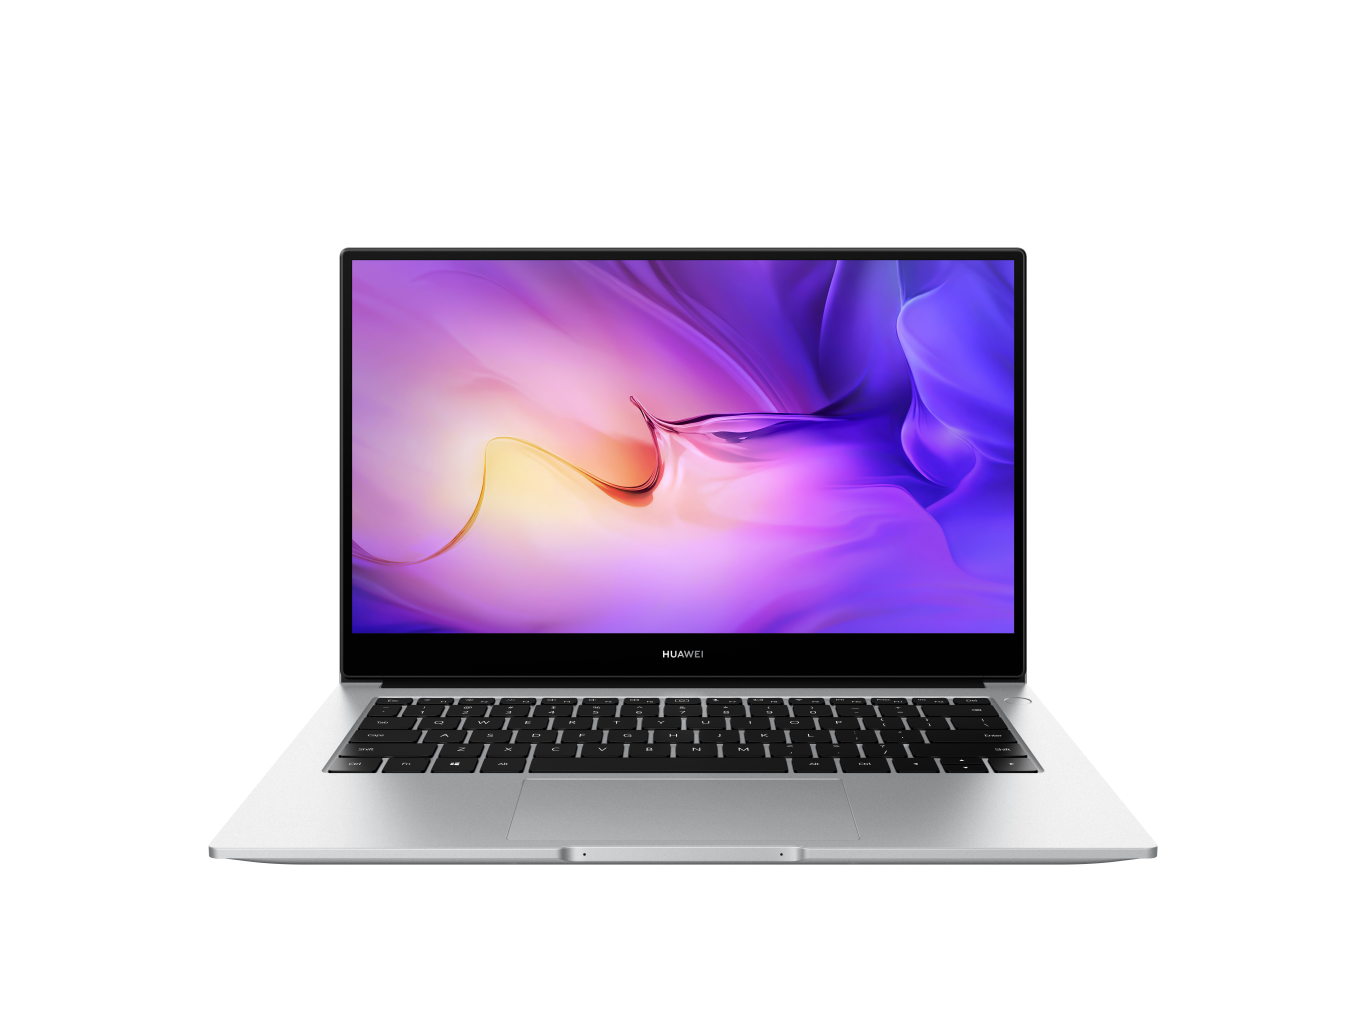 MateBook D series laptops launched by Huawei